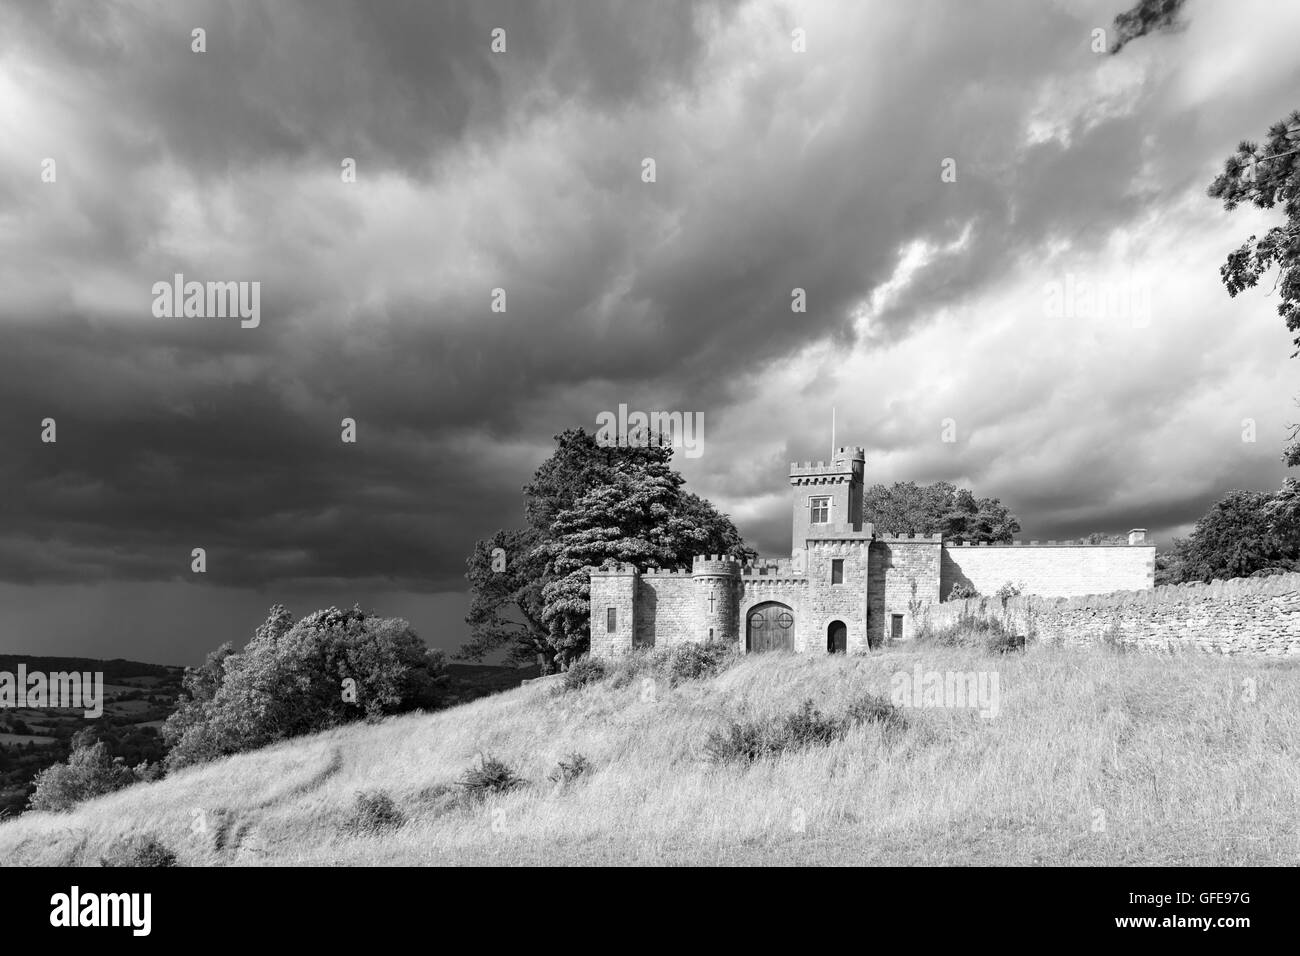 The local folly known as Rodborough Fort or Fort George in monochrome on Rodborough Common, Stroud, Gloucestershire, - Stock Image